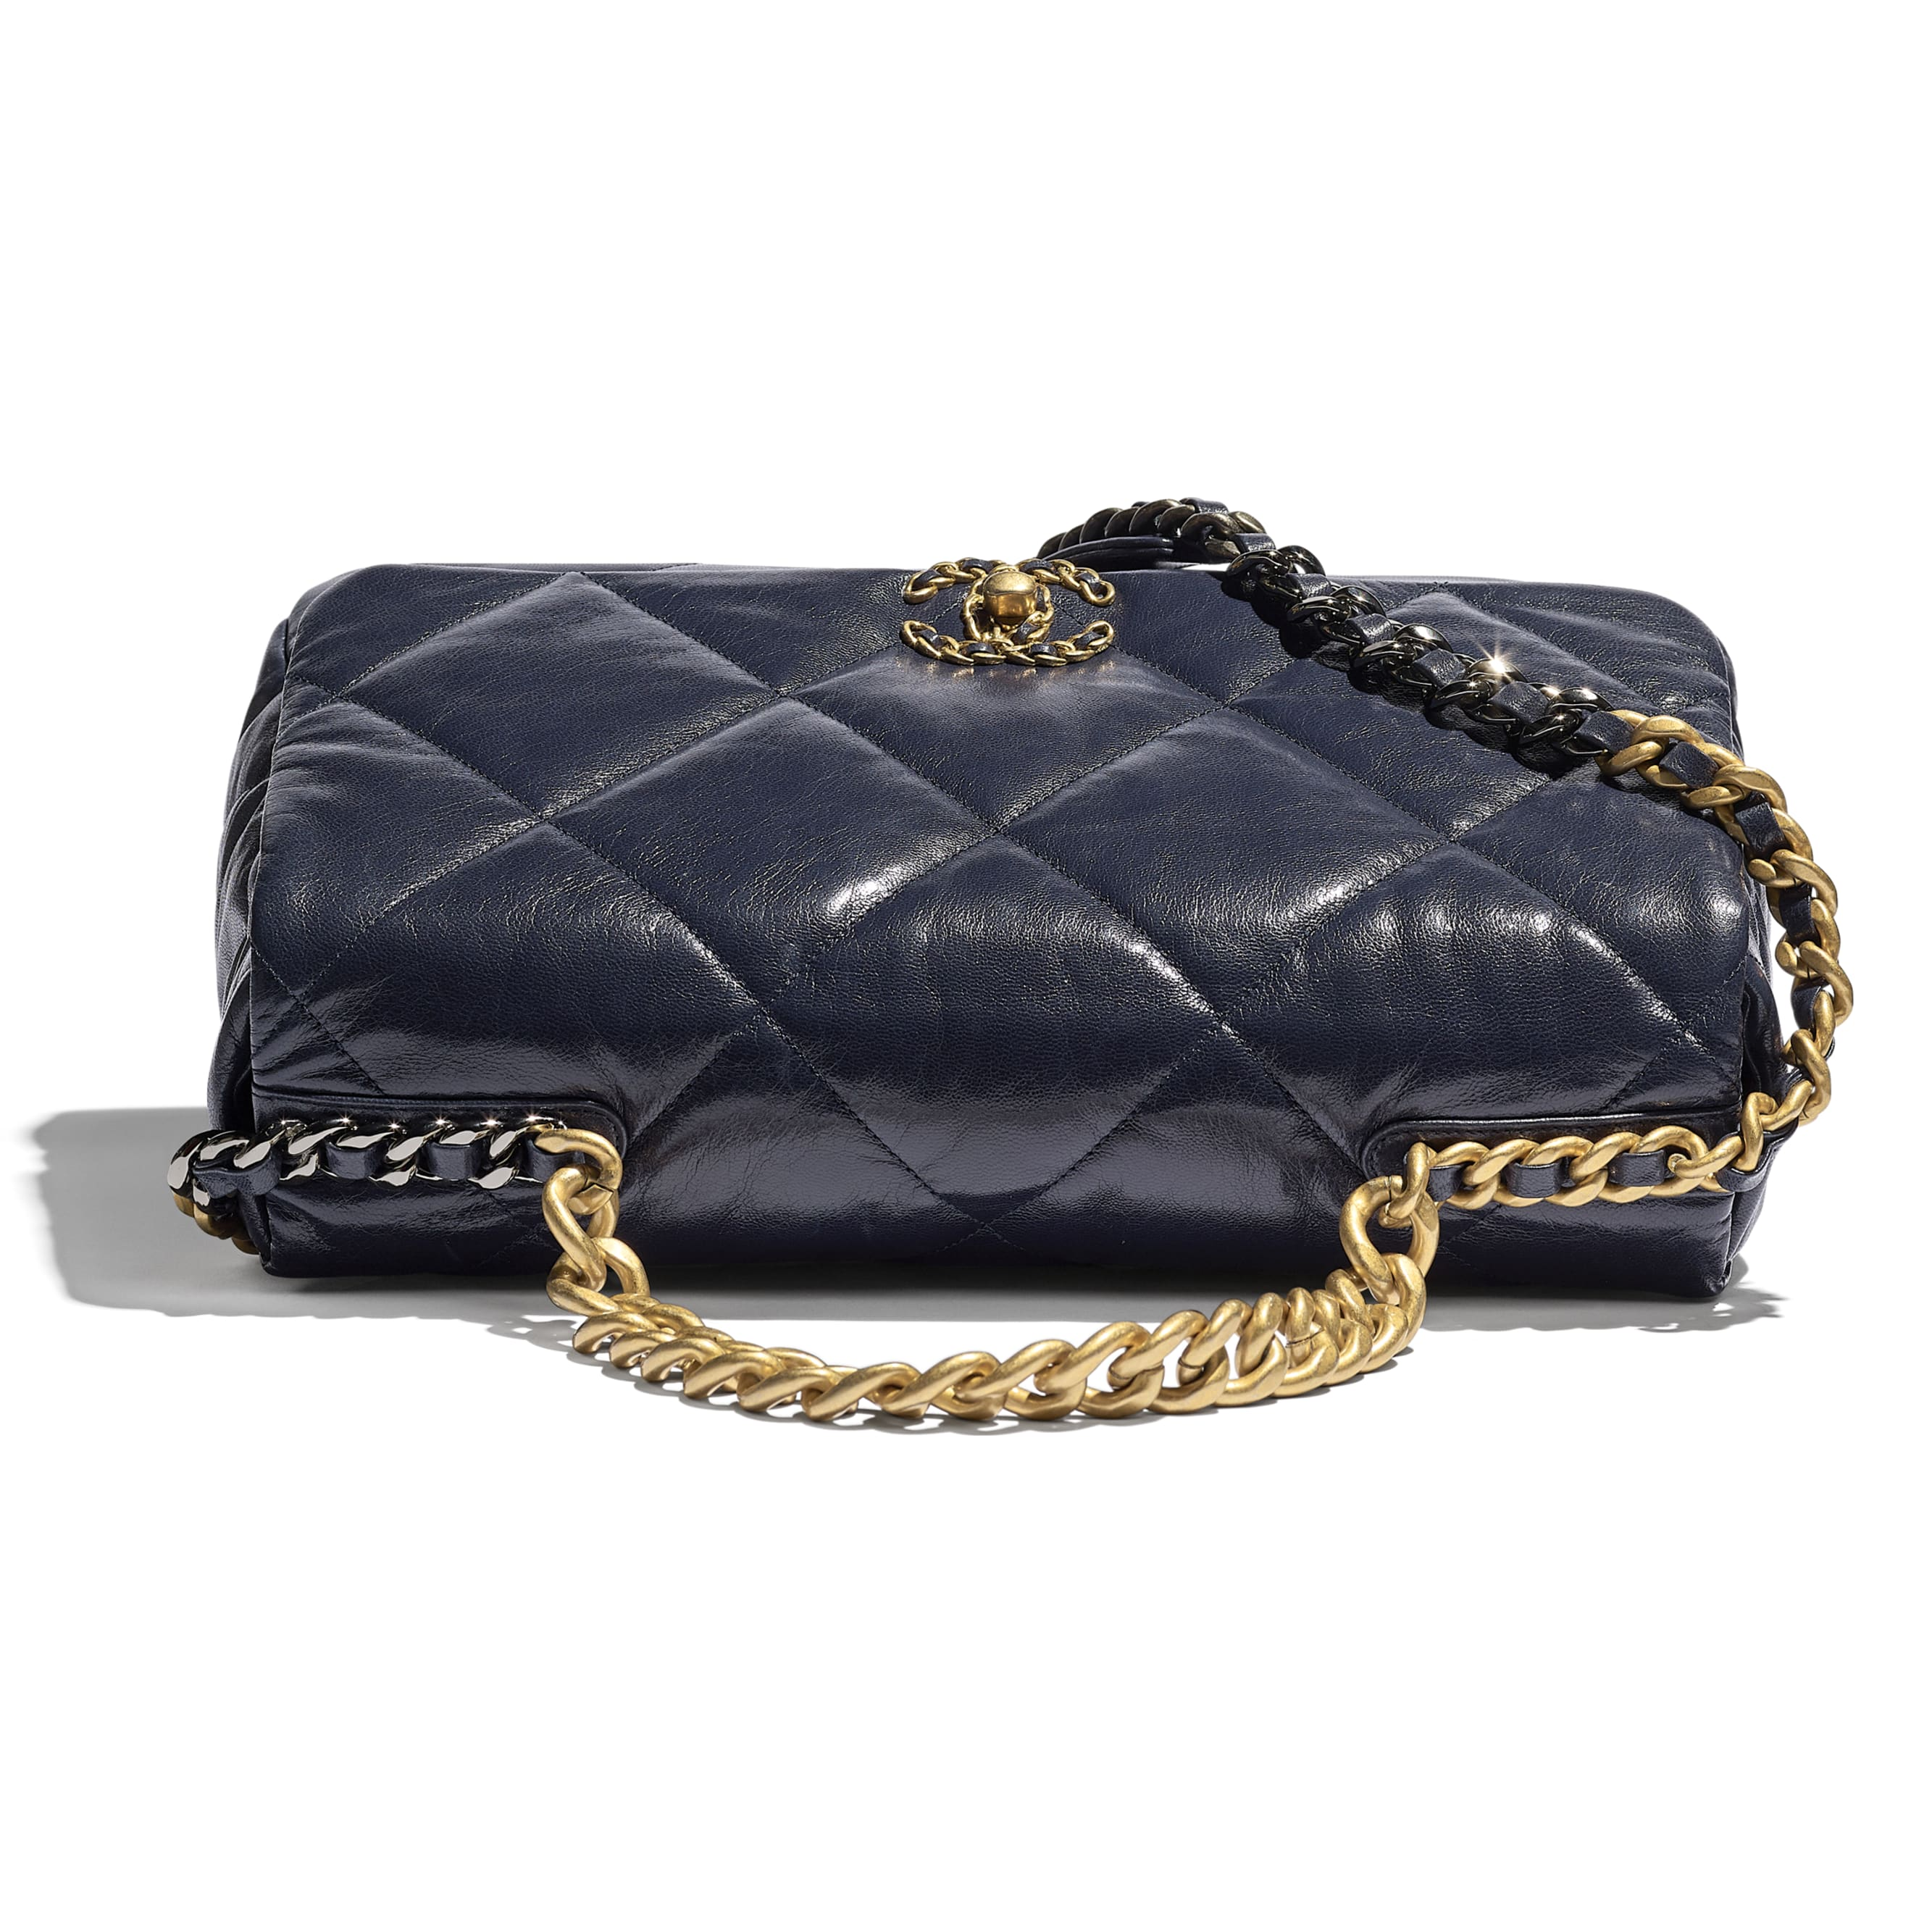 CHANEL 19 Maxi Flap Bag - Navy Blue - Goatskin, Gold-Tone, Silver-Tone & Ruthenium-Finish Metal - CHANEL - Extra view - see standard sized version